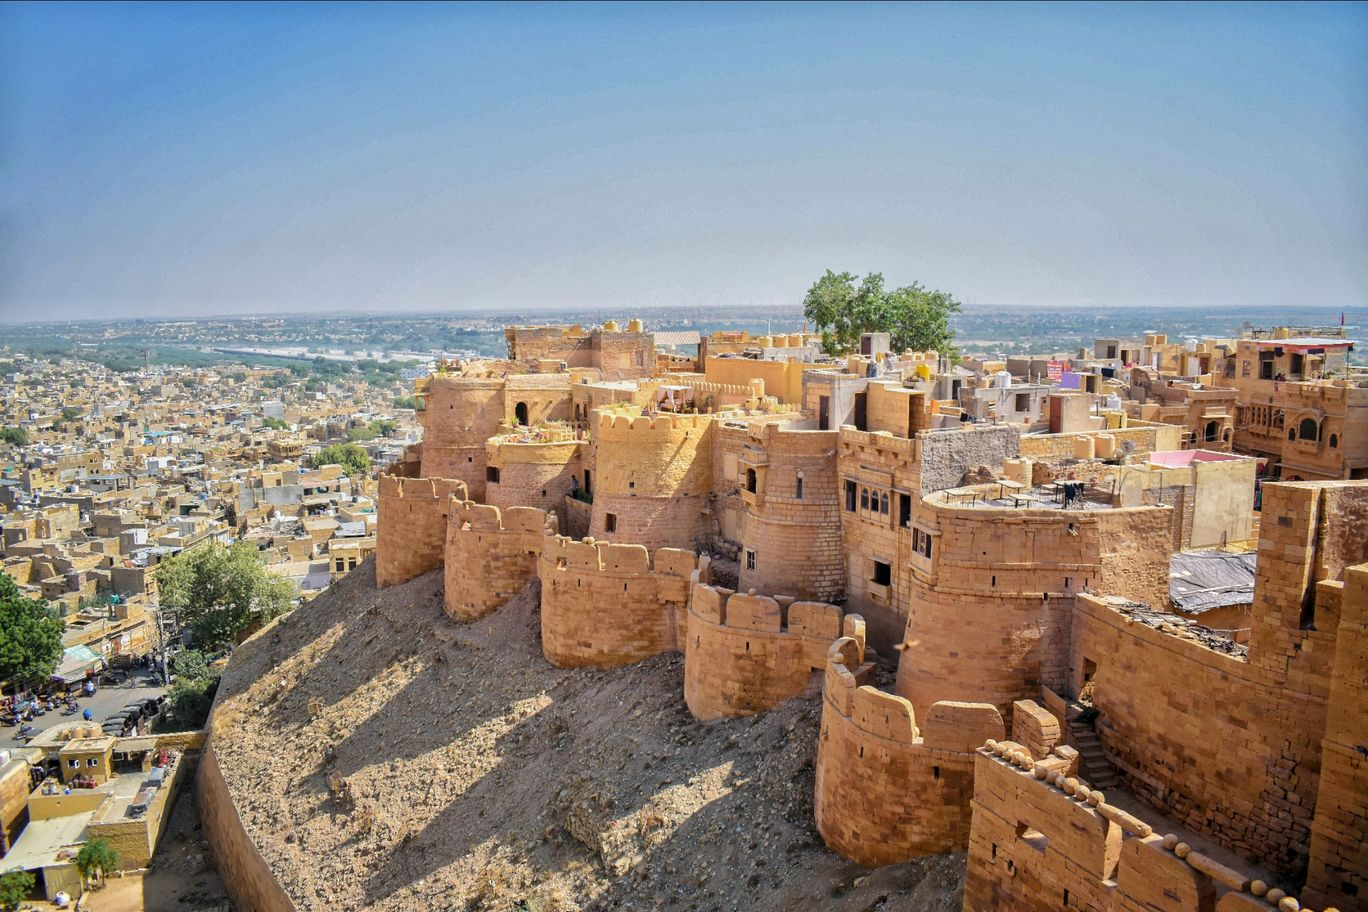 Jaisalmer- The Golden City